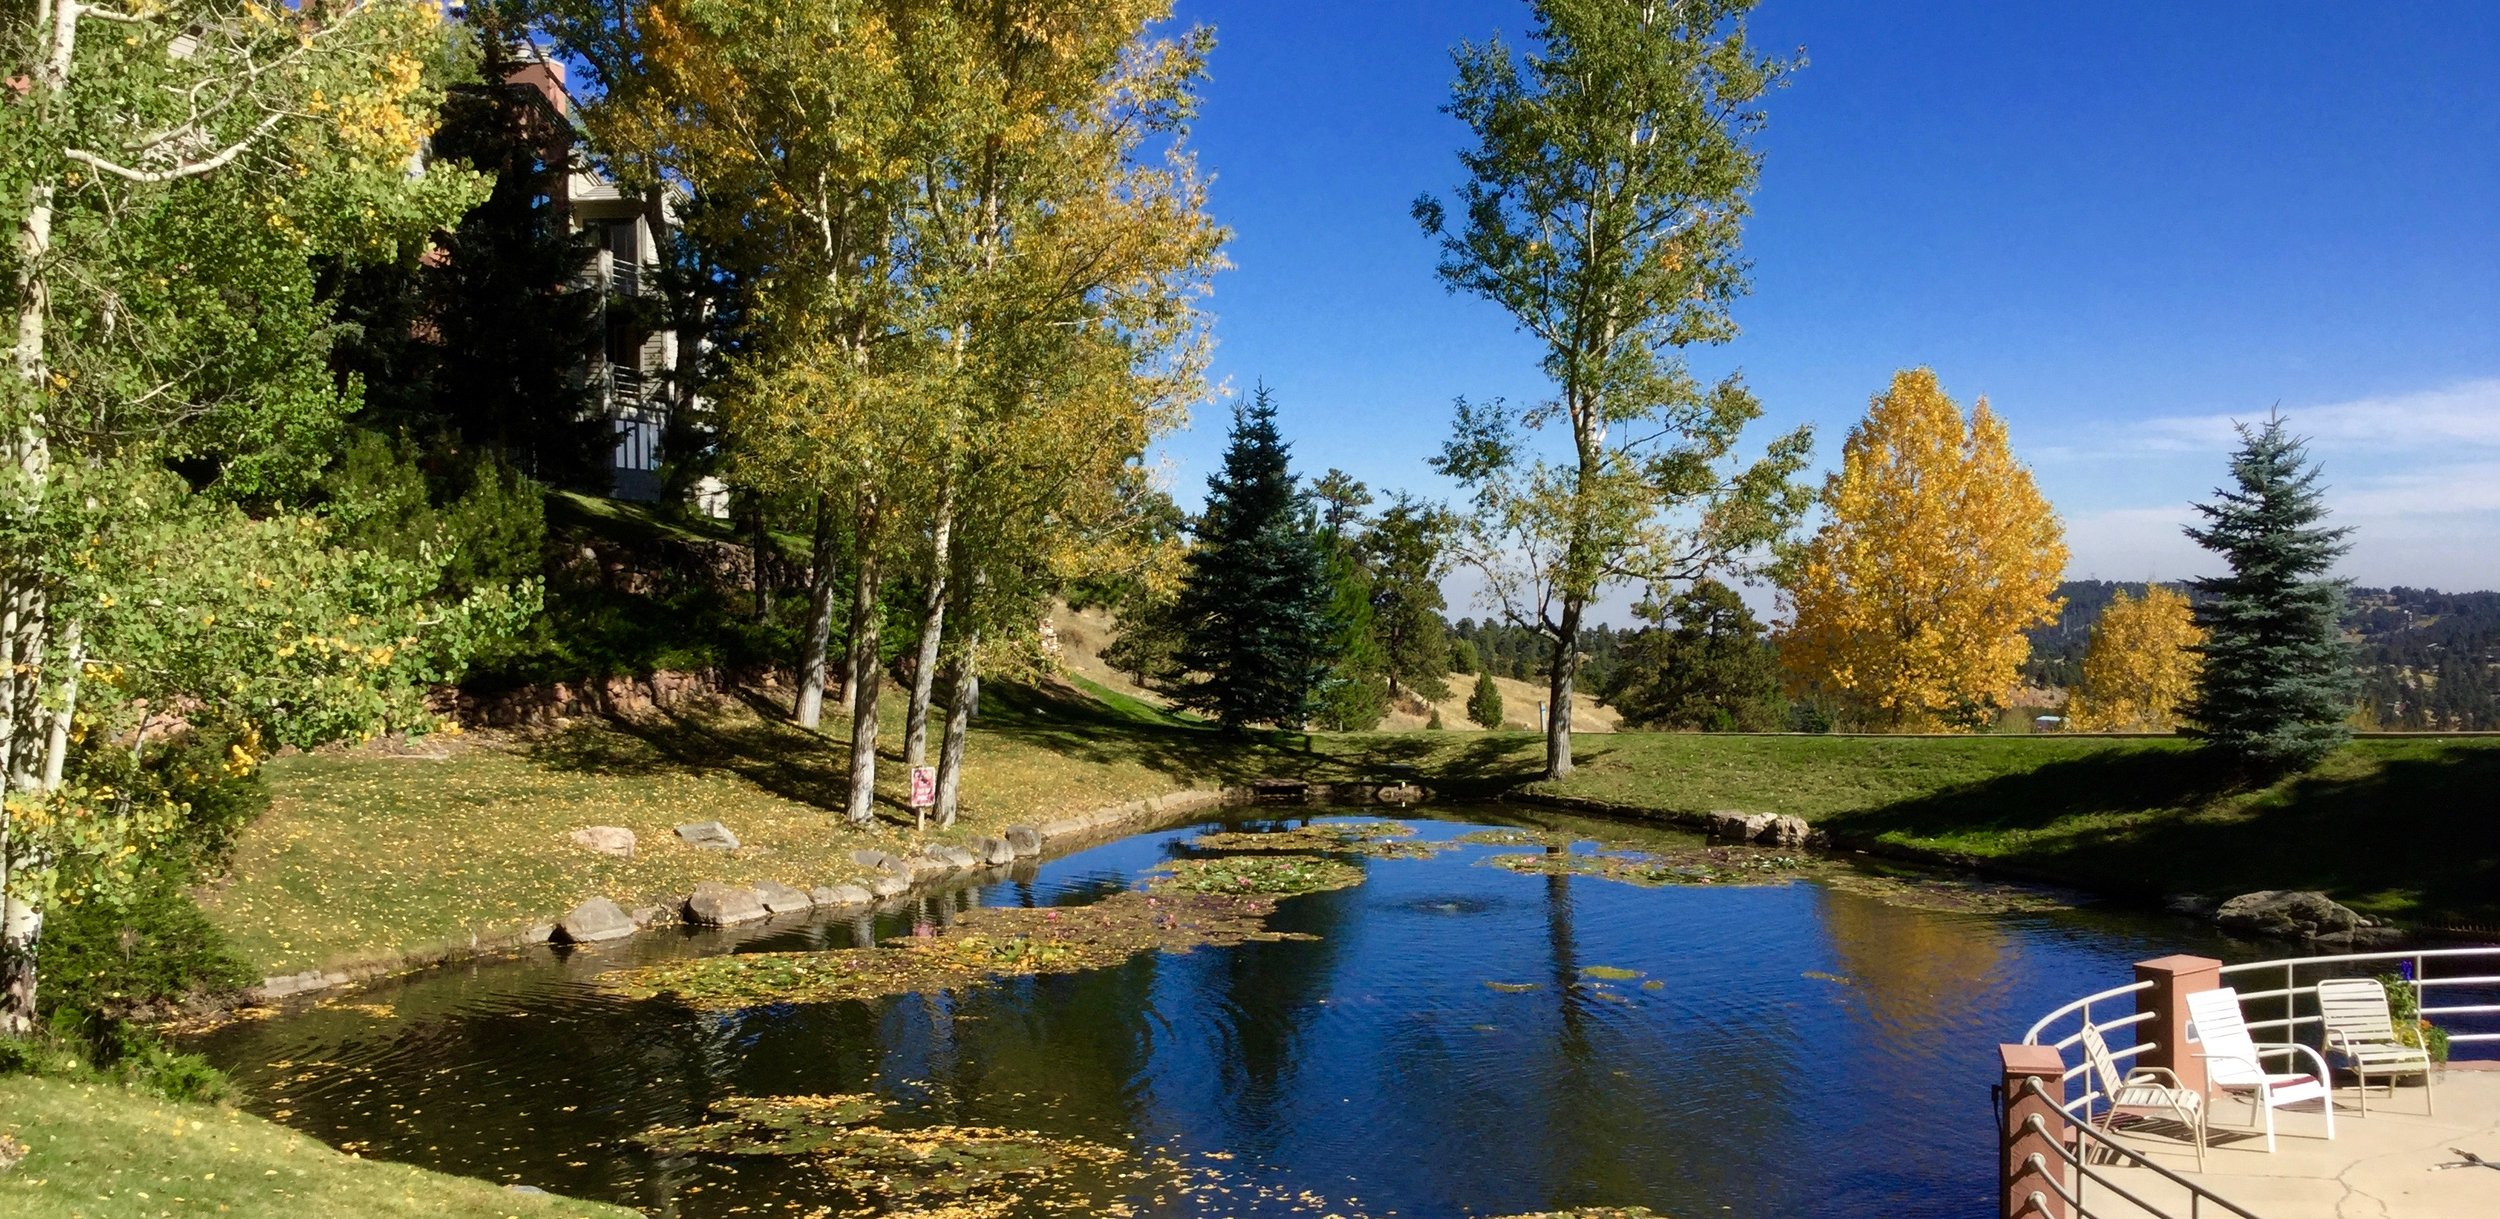 The Chimney Creek clubhouse and pool overlook a stream-fed pond at the center of the Community near Golden, Colorado